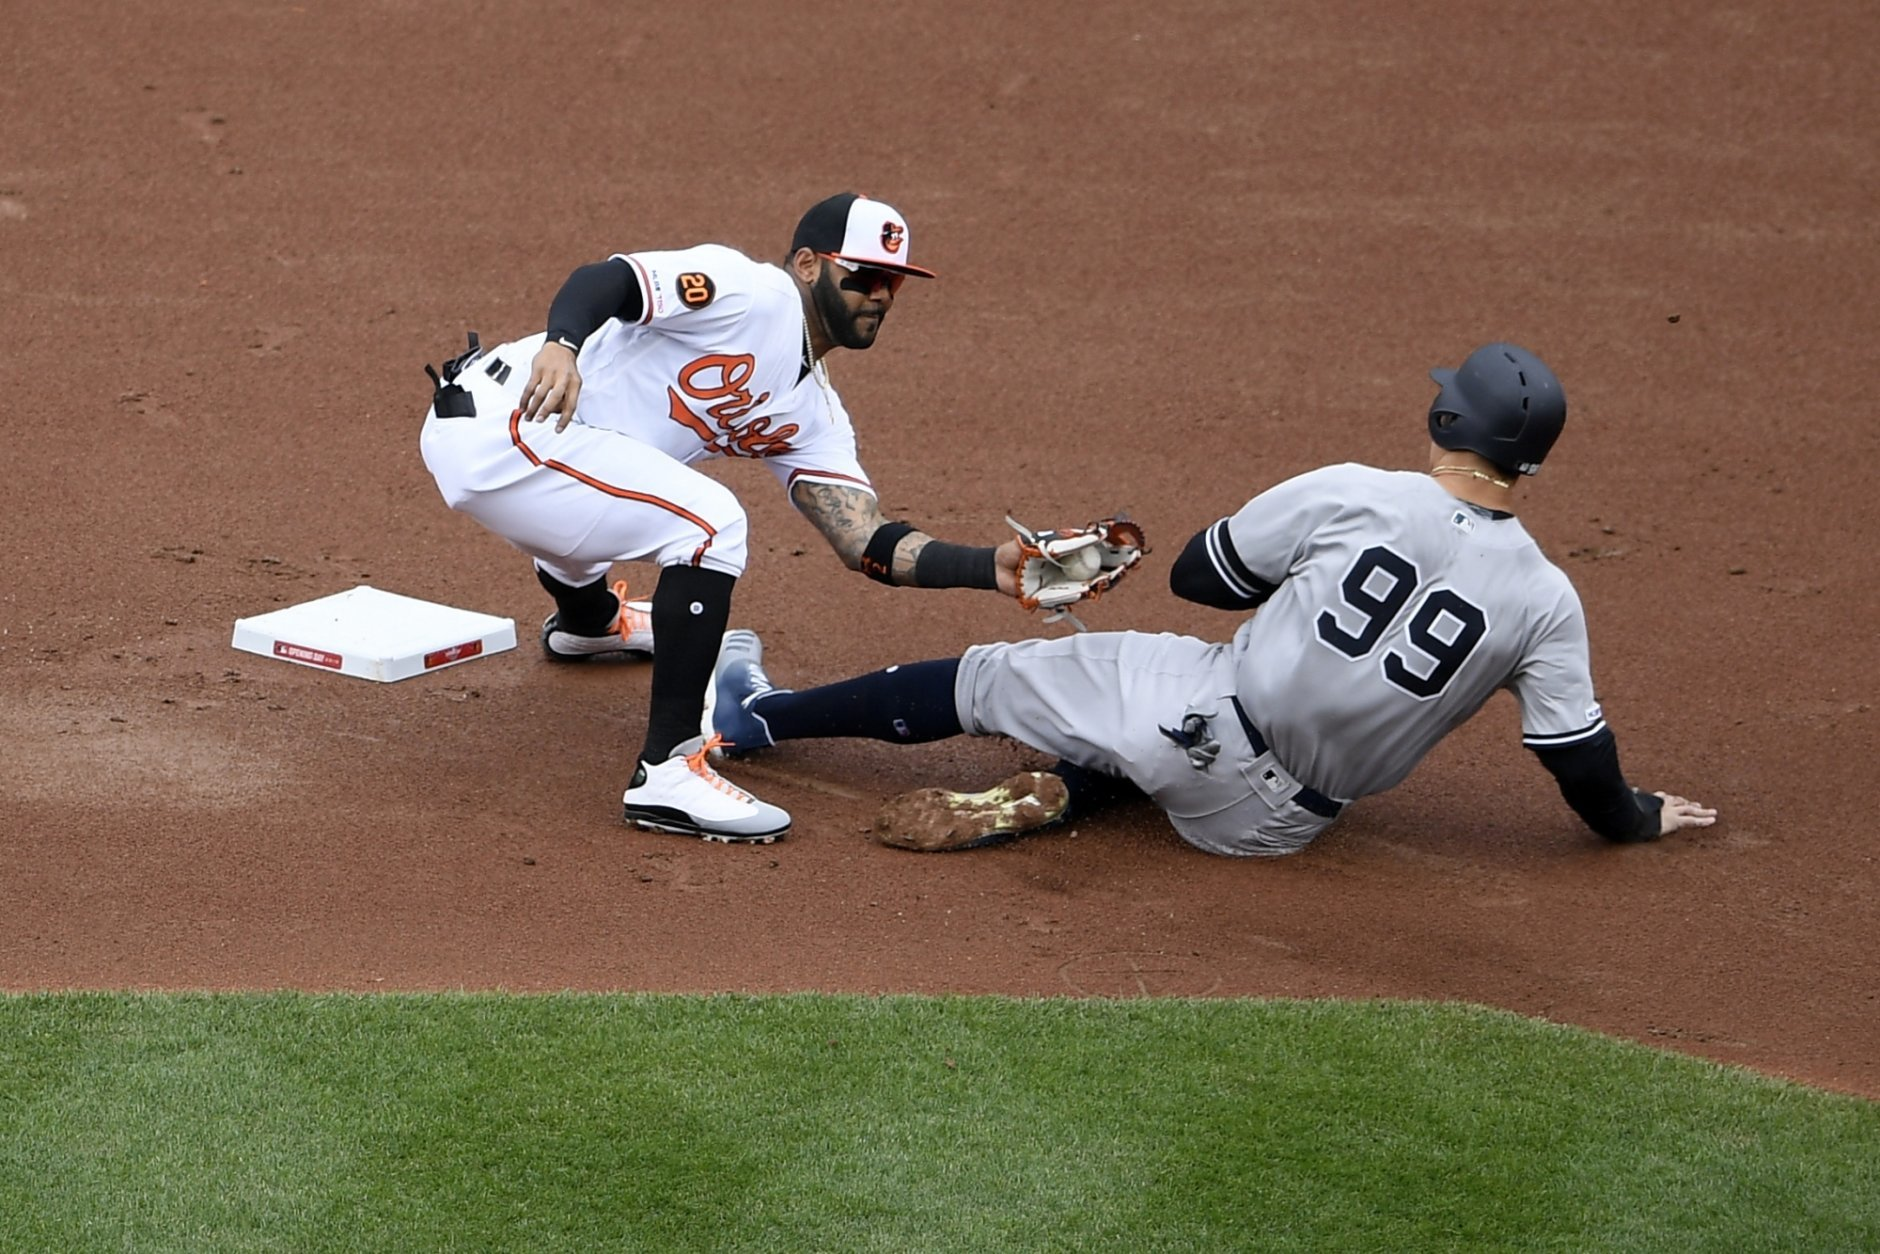 New York Yankees' Aaron Judge (99) is out trying to steal second against Baltimore Orioles second baseman Jonathan Villar, left, during the first inning of a baseball game, Thursday, April 4, 2019, in Baltimore. (AP Photo/Nick Wass)